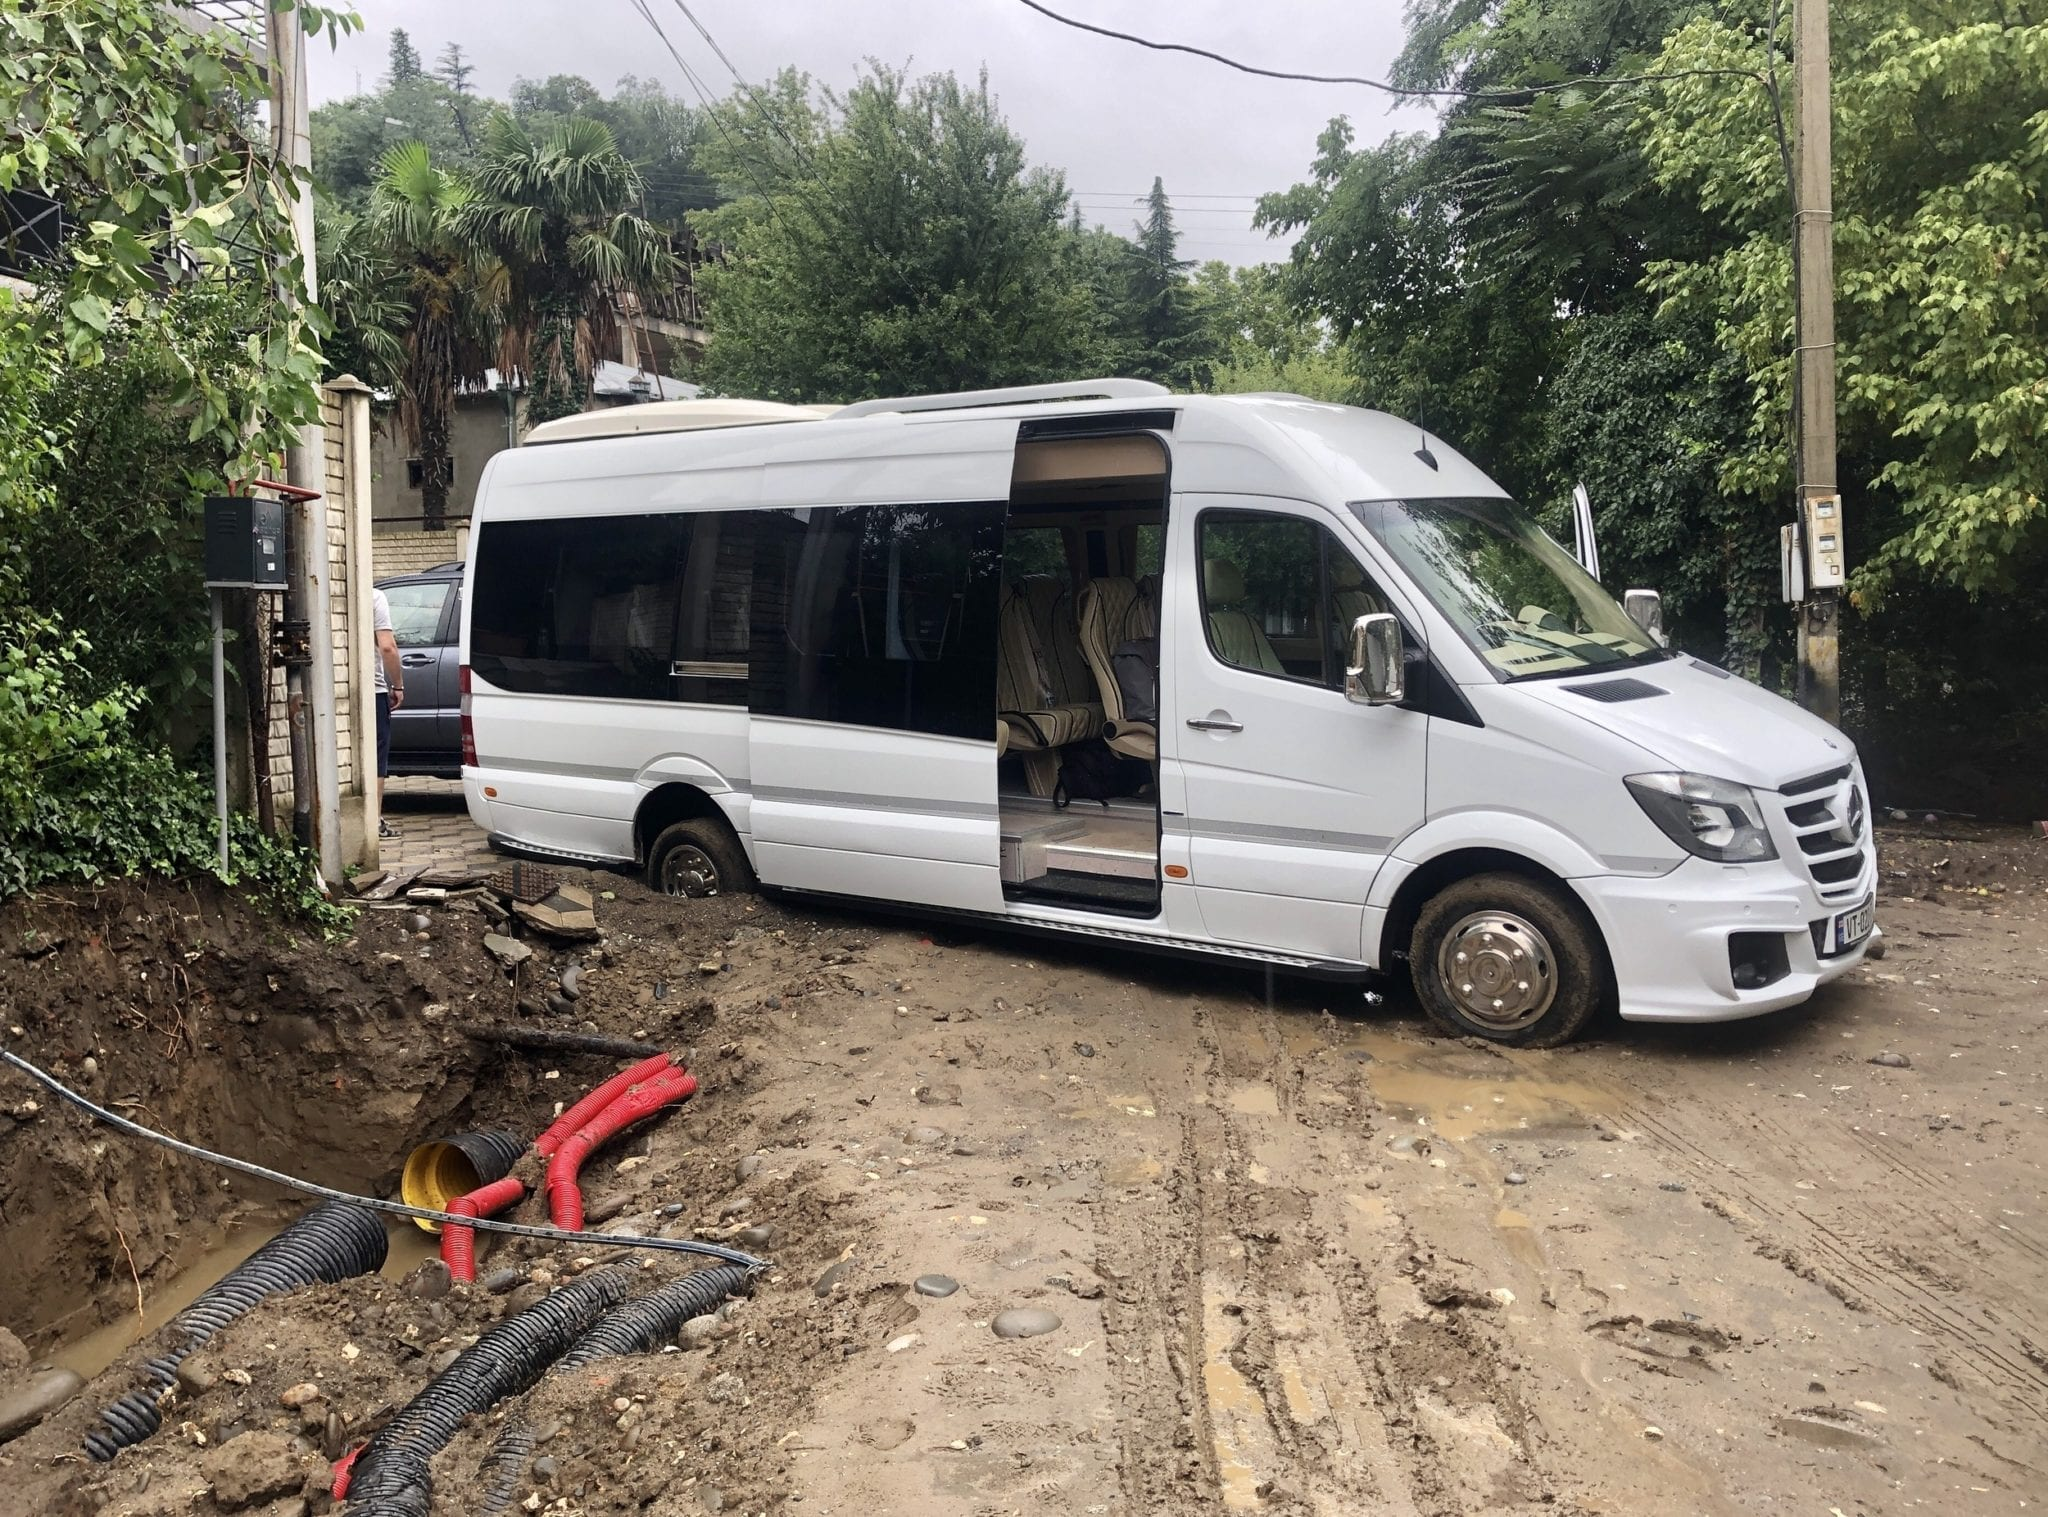 A white van on a torn-up muddy road, its back wheel sunken deeply into the mud.